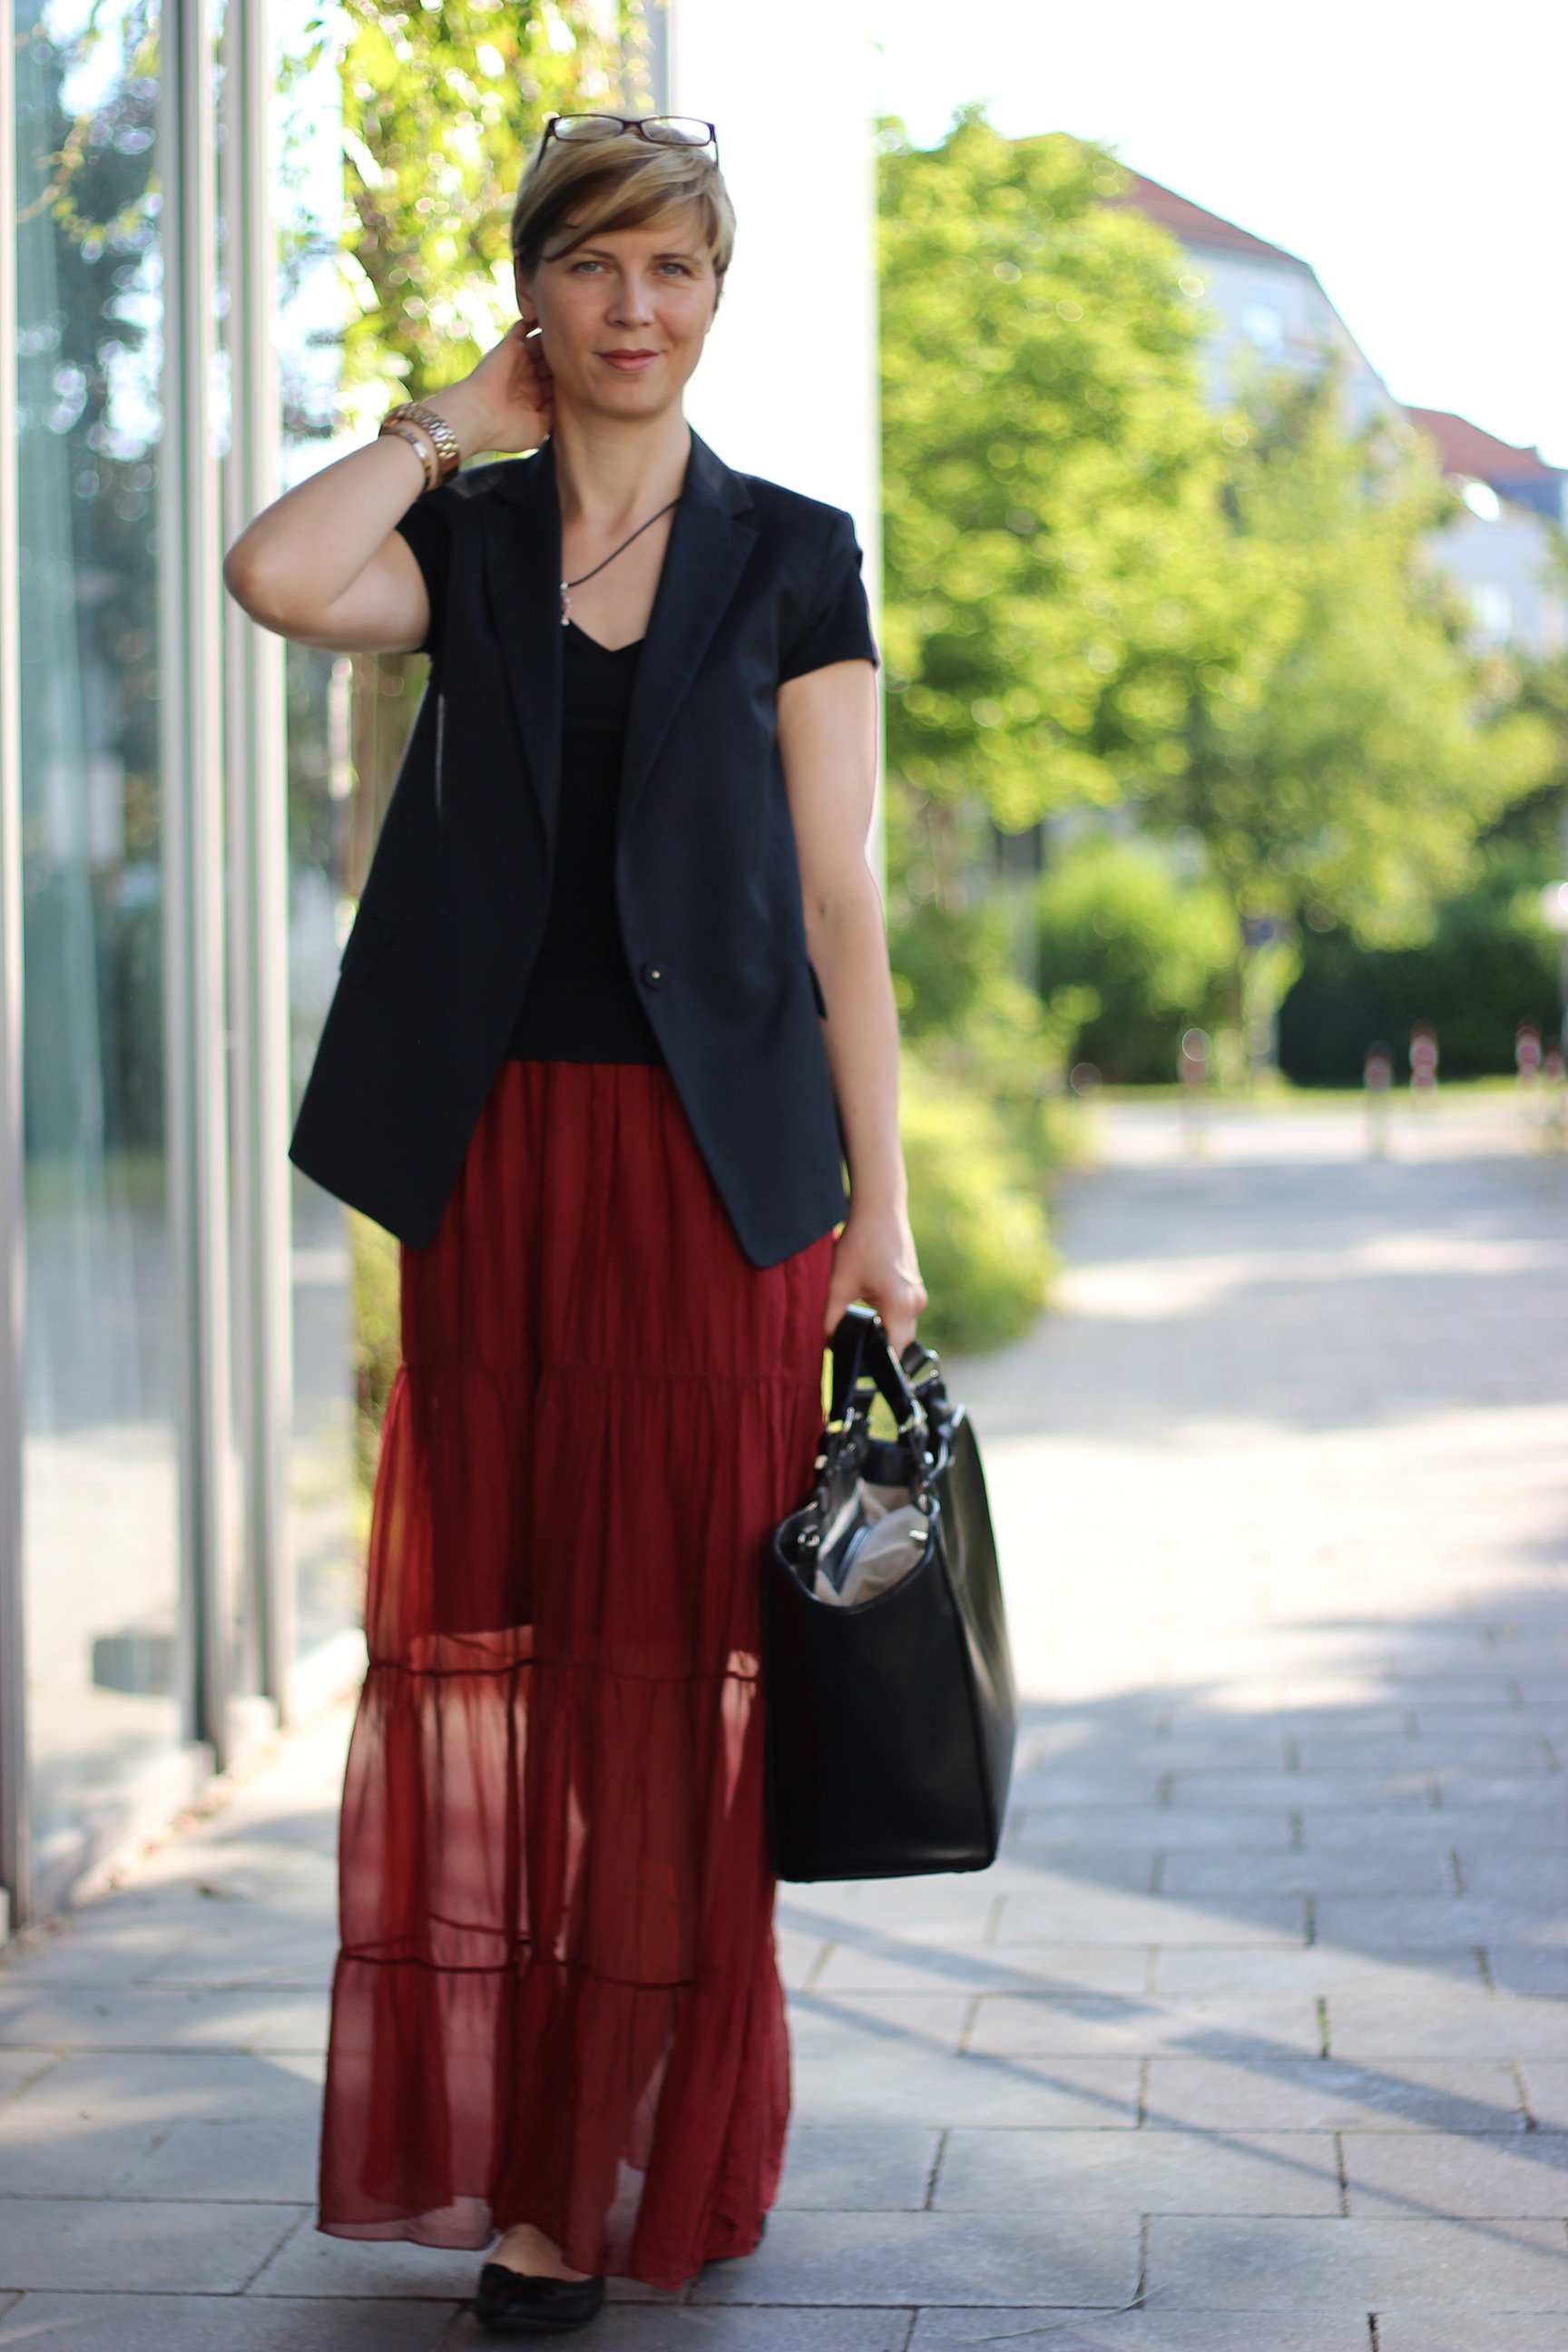 IMG_7660a_Maxirock_PaoloCasalini_Sommerbürooutfit_Officelook_Sommer_Seide